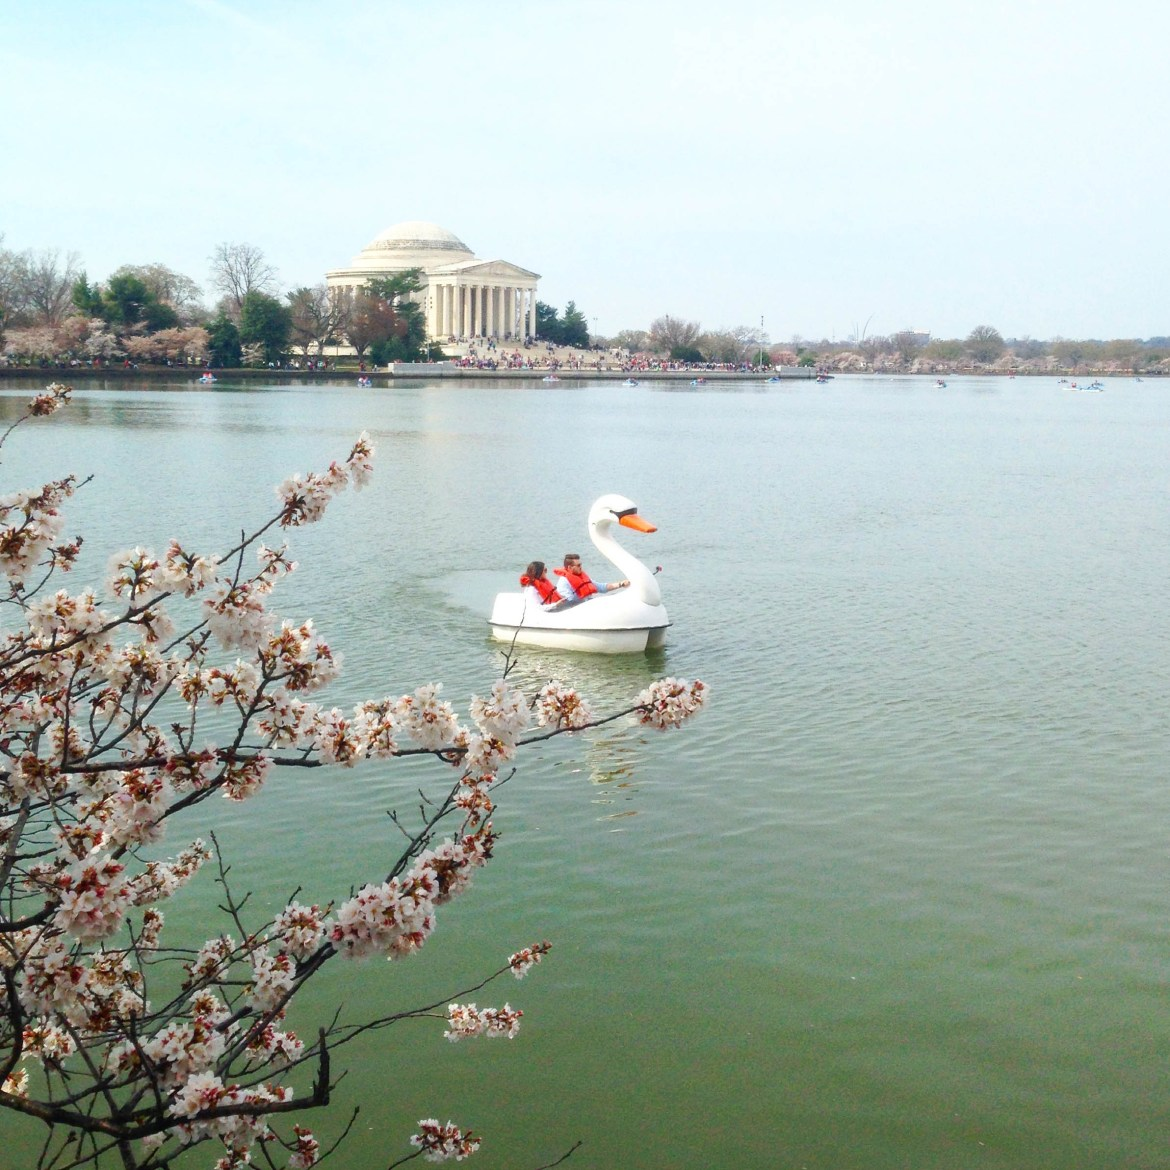 The Best Touristy Sites to See in DC!